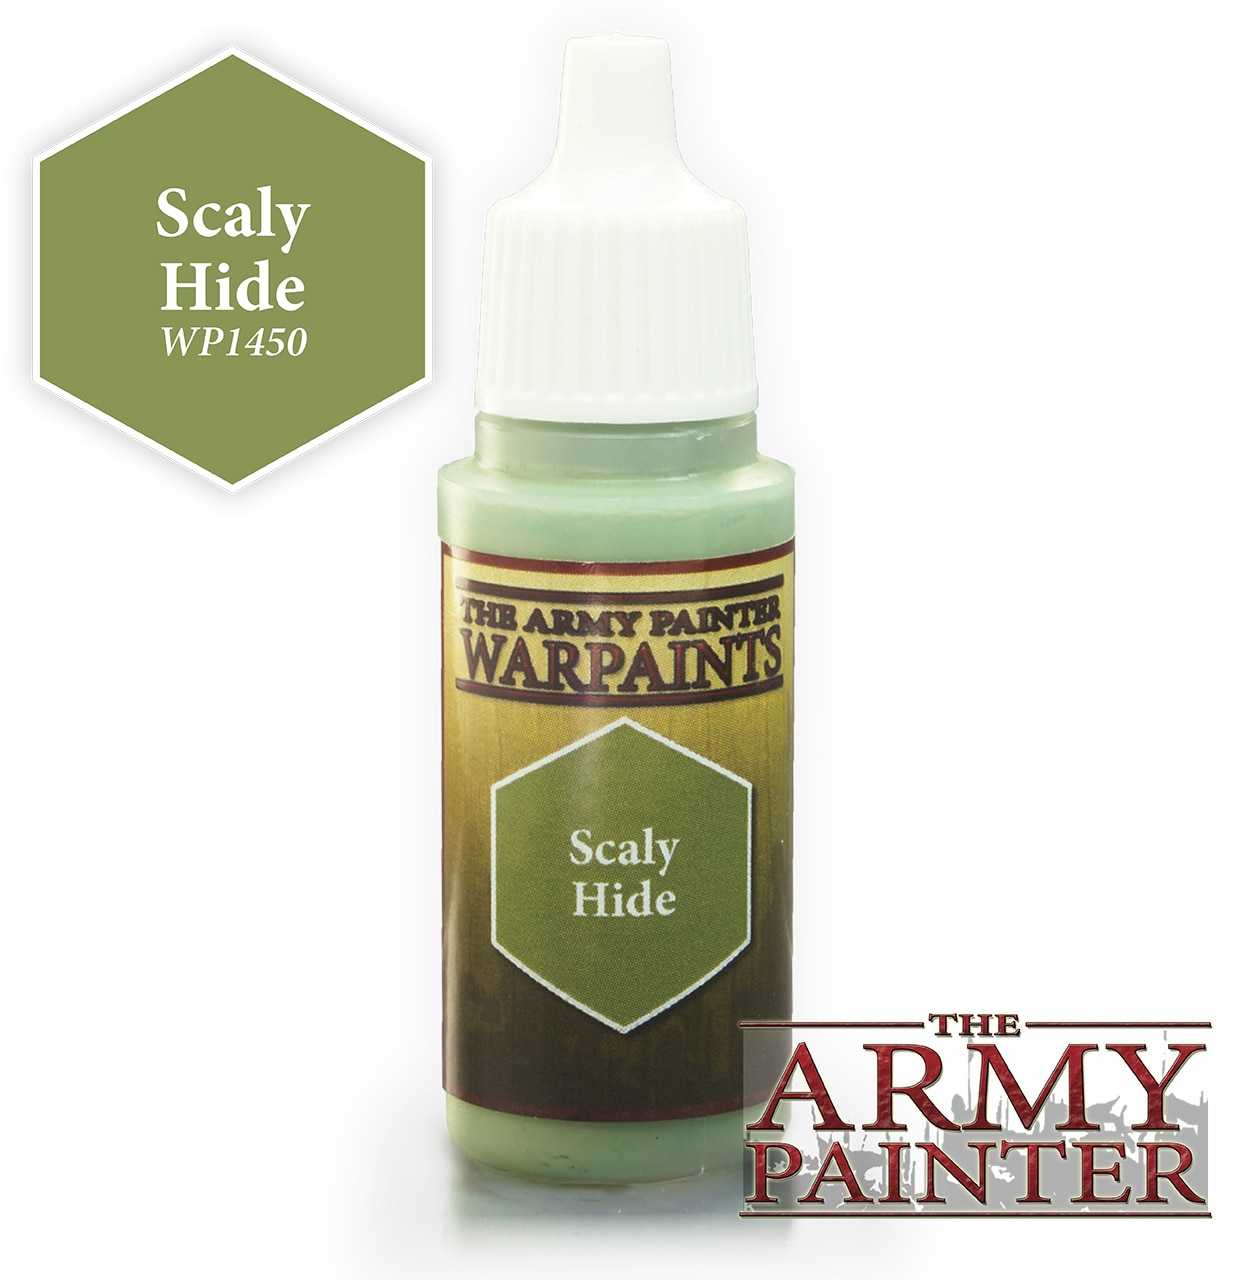 Army Painter Warpaint - Scaly Hide